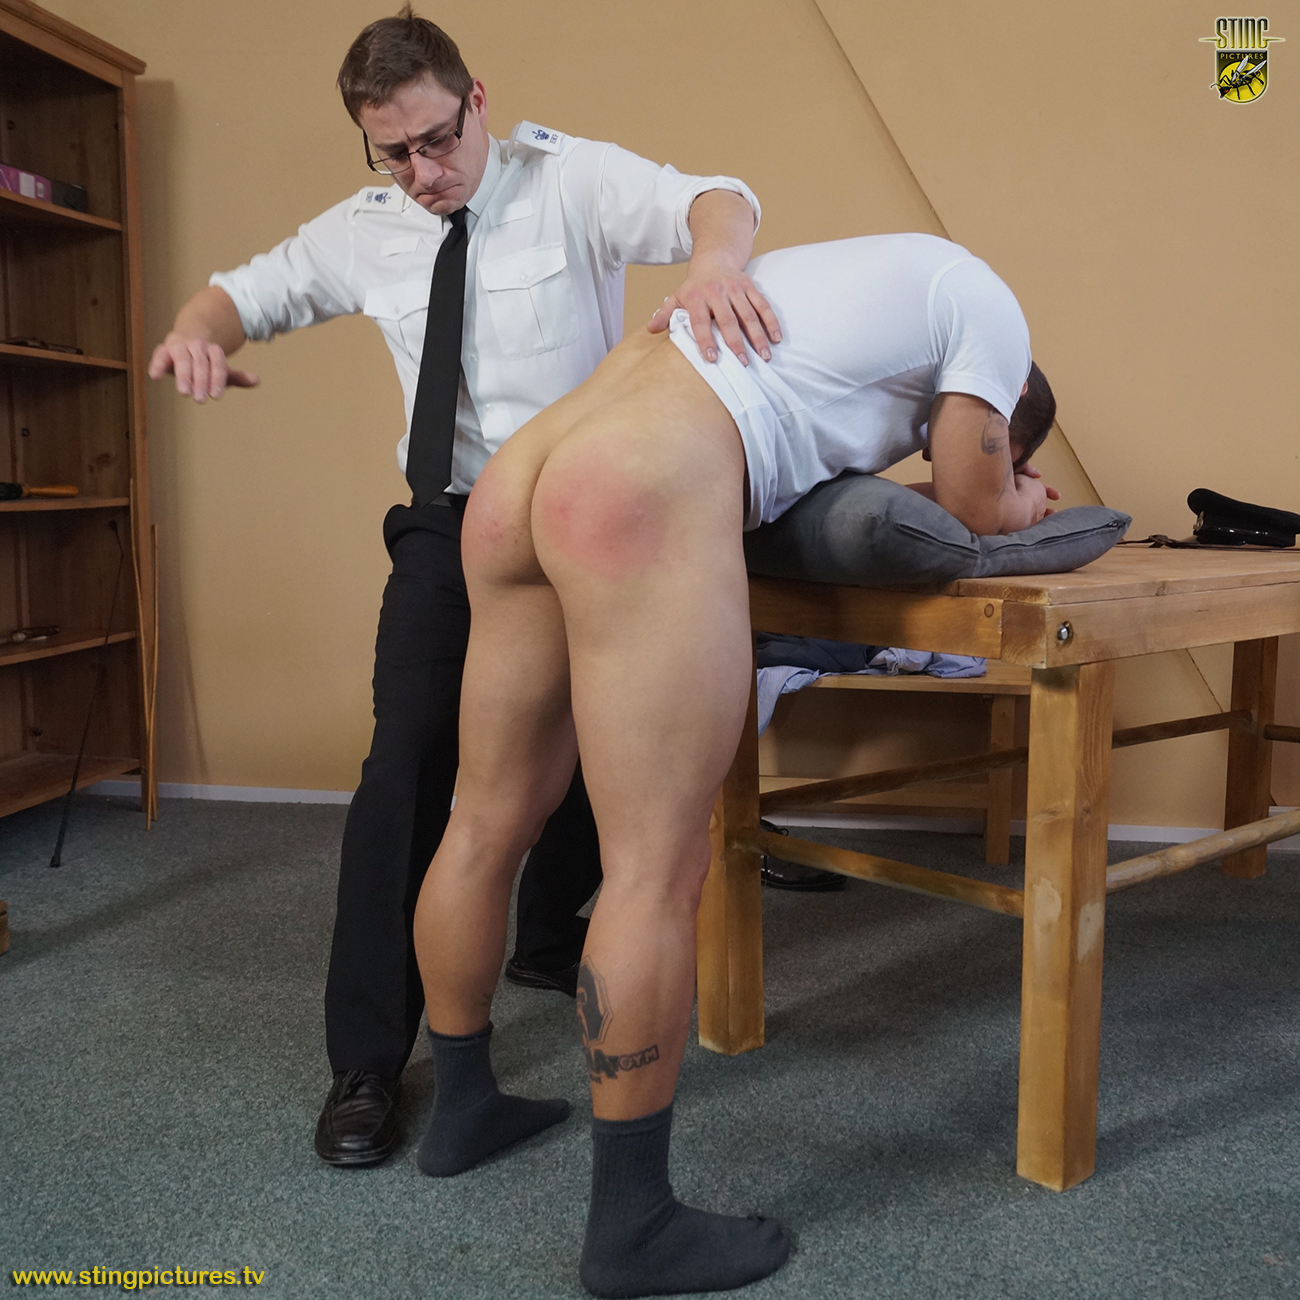 Digging this spank his boy the